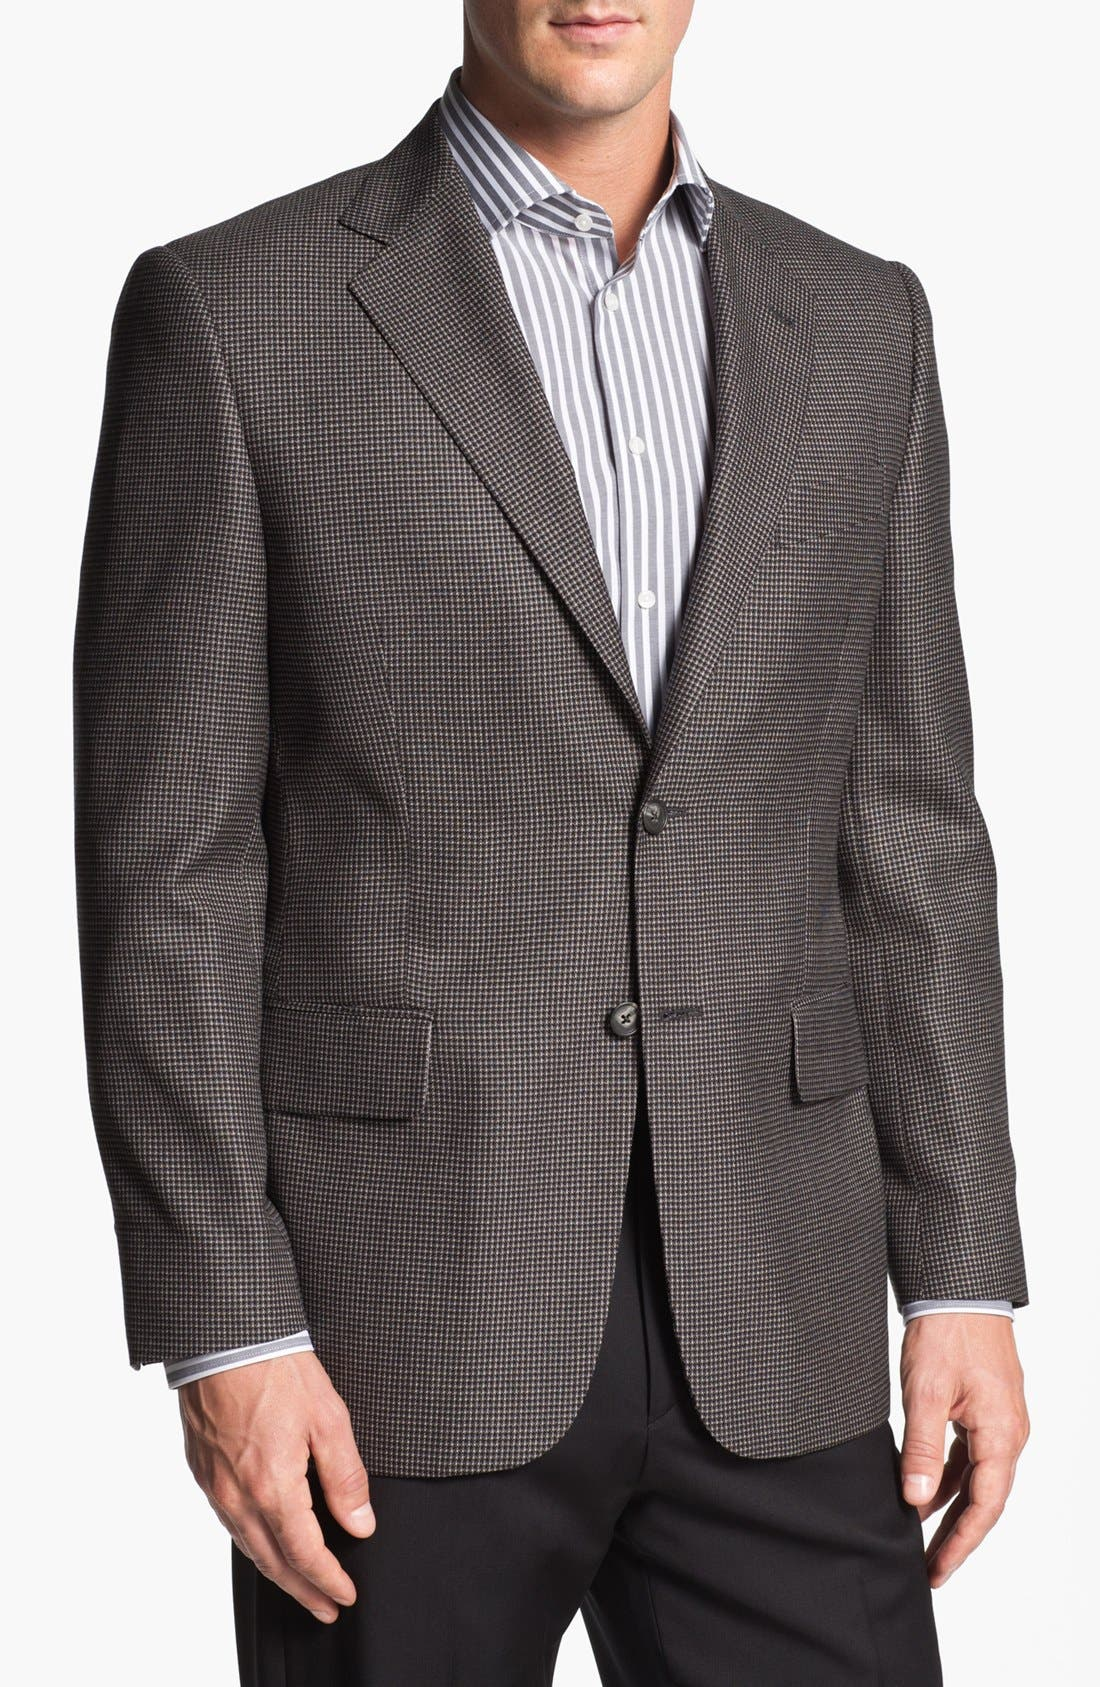 Alternate Image 1 Selected - Joseph Abboud 'Signature Silver' Check Sportcoat